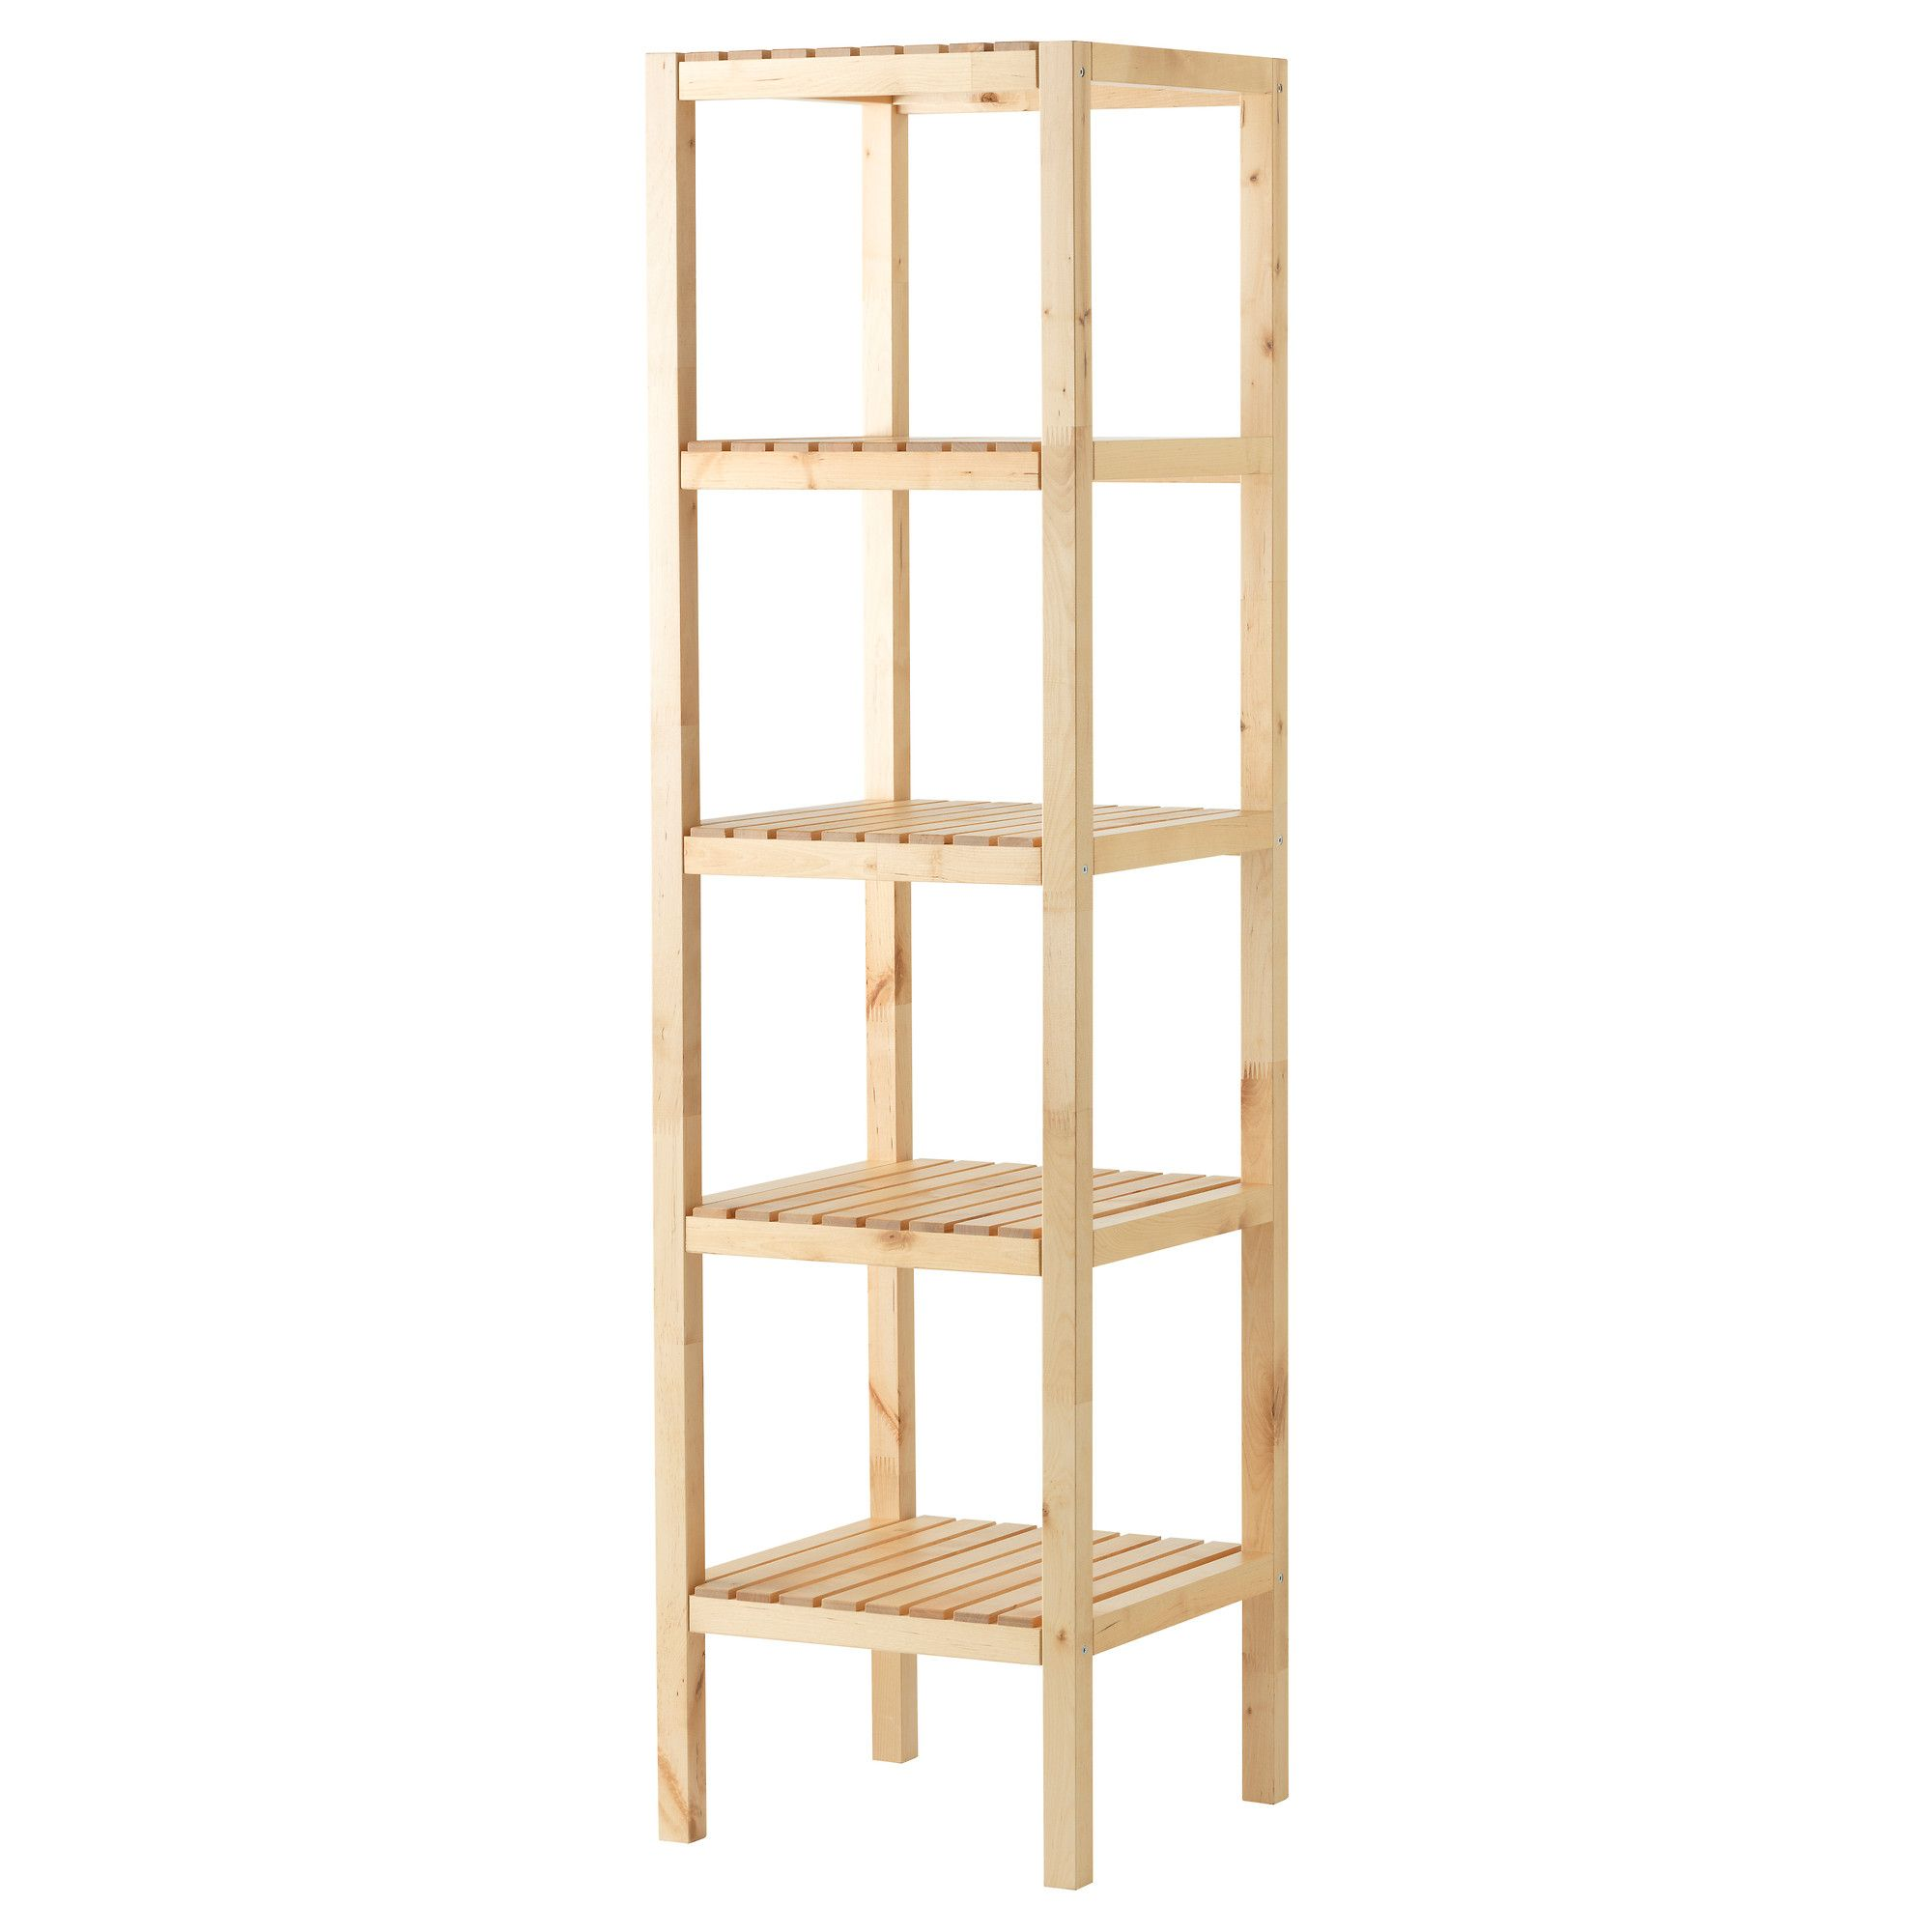 Nussbaum Regal Ikea Ikea Molger Birch Shelf Unit For The Home Ikea Shelving